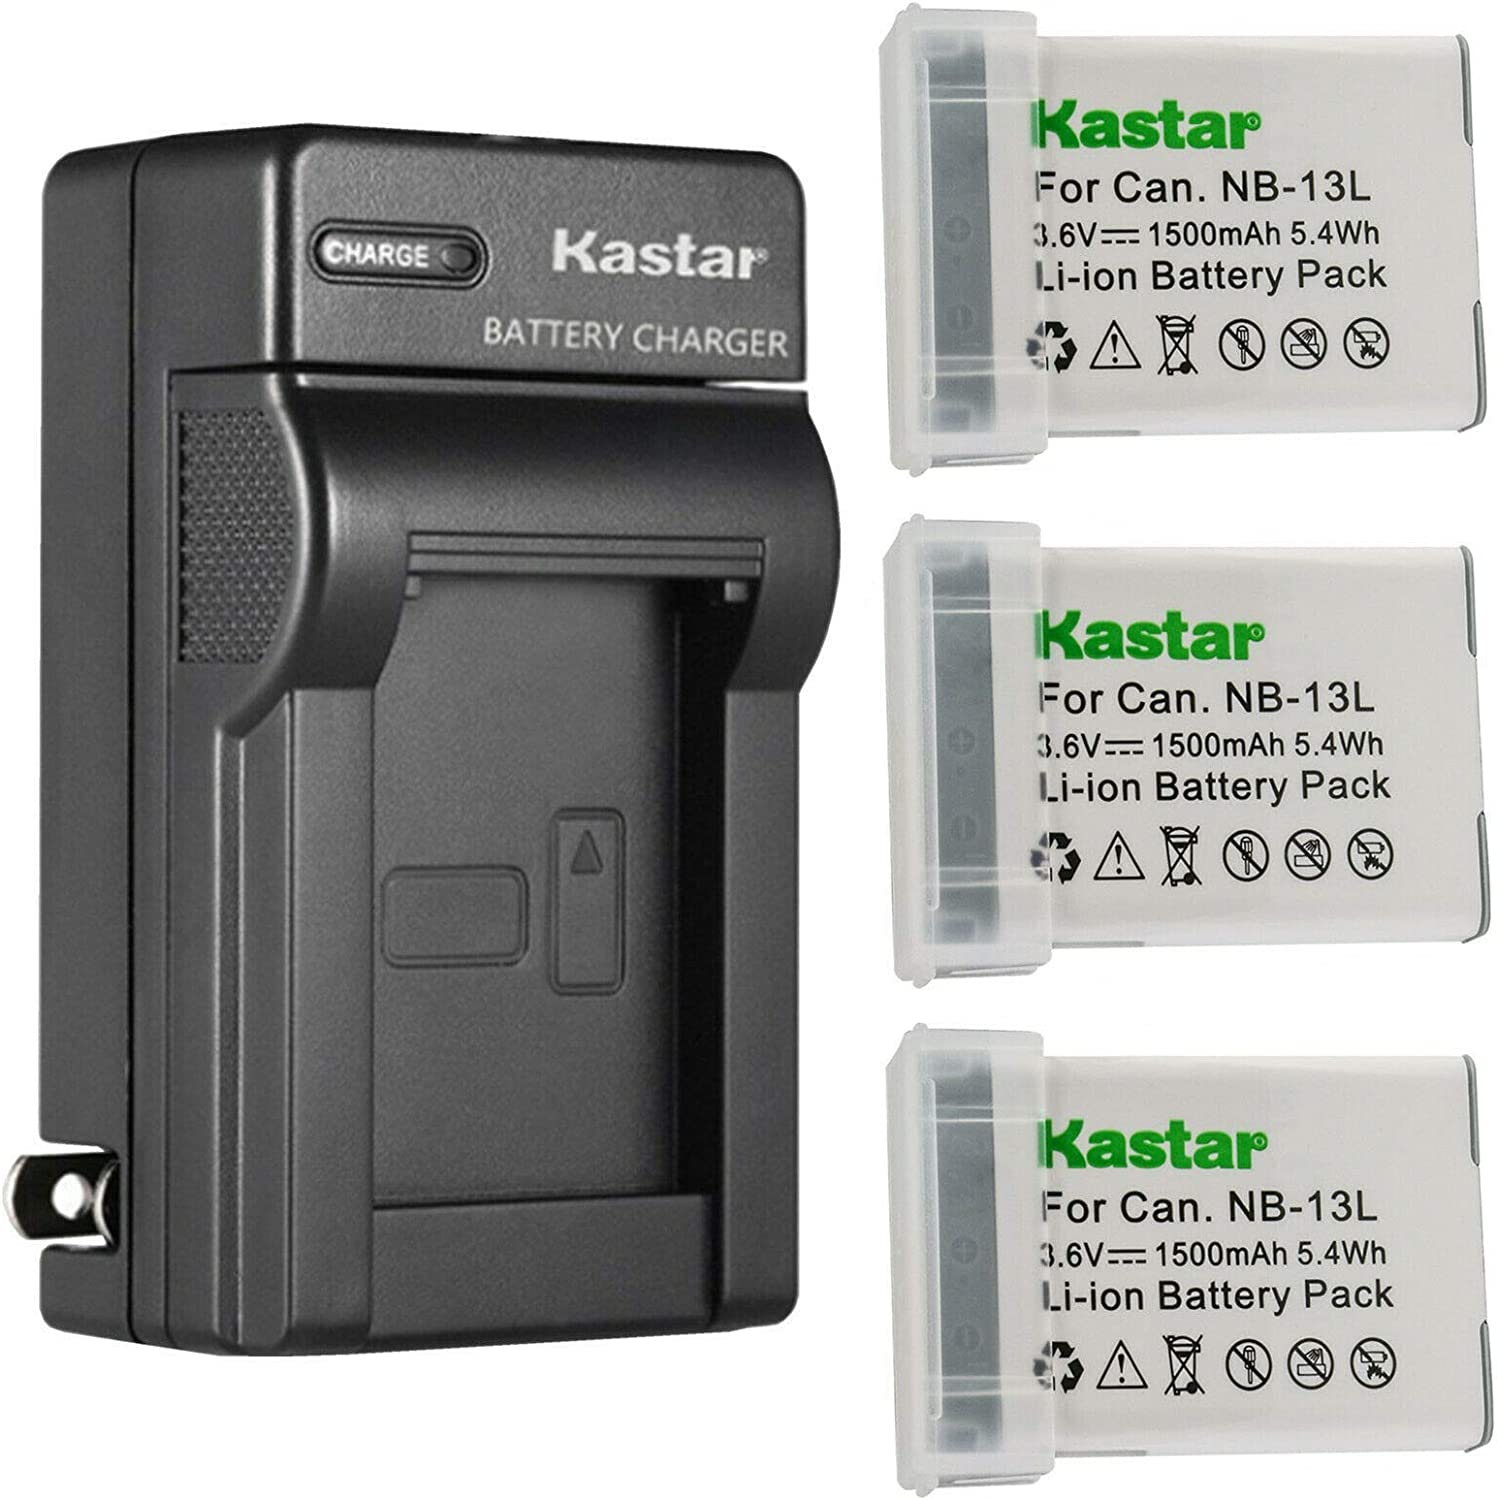 Kastar 3-Pack Battery and AC Wall Charger Long-awaited for Replacement Ranking TOP10 Canon